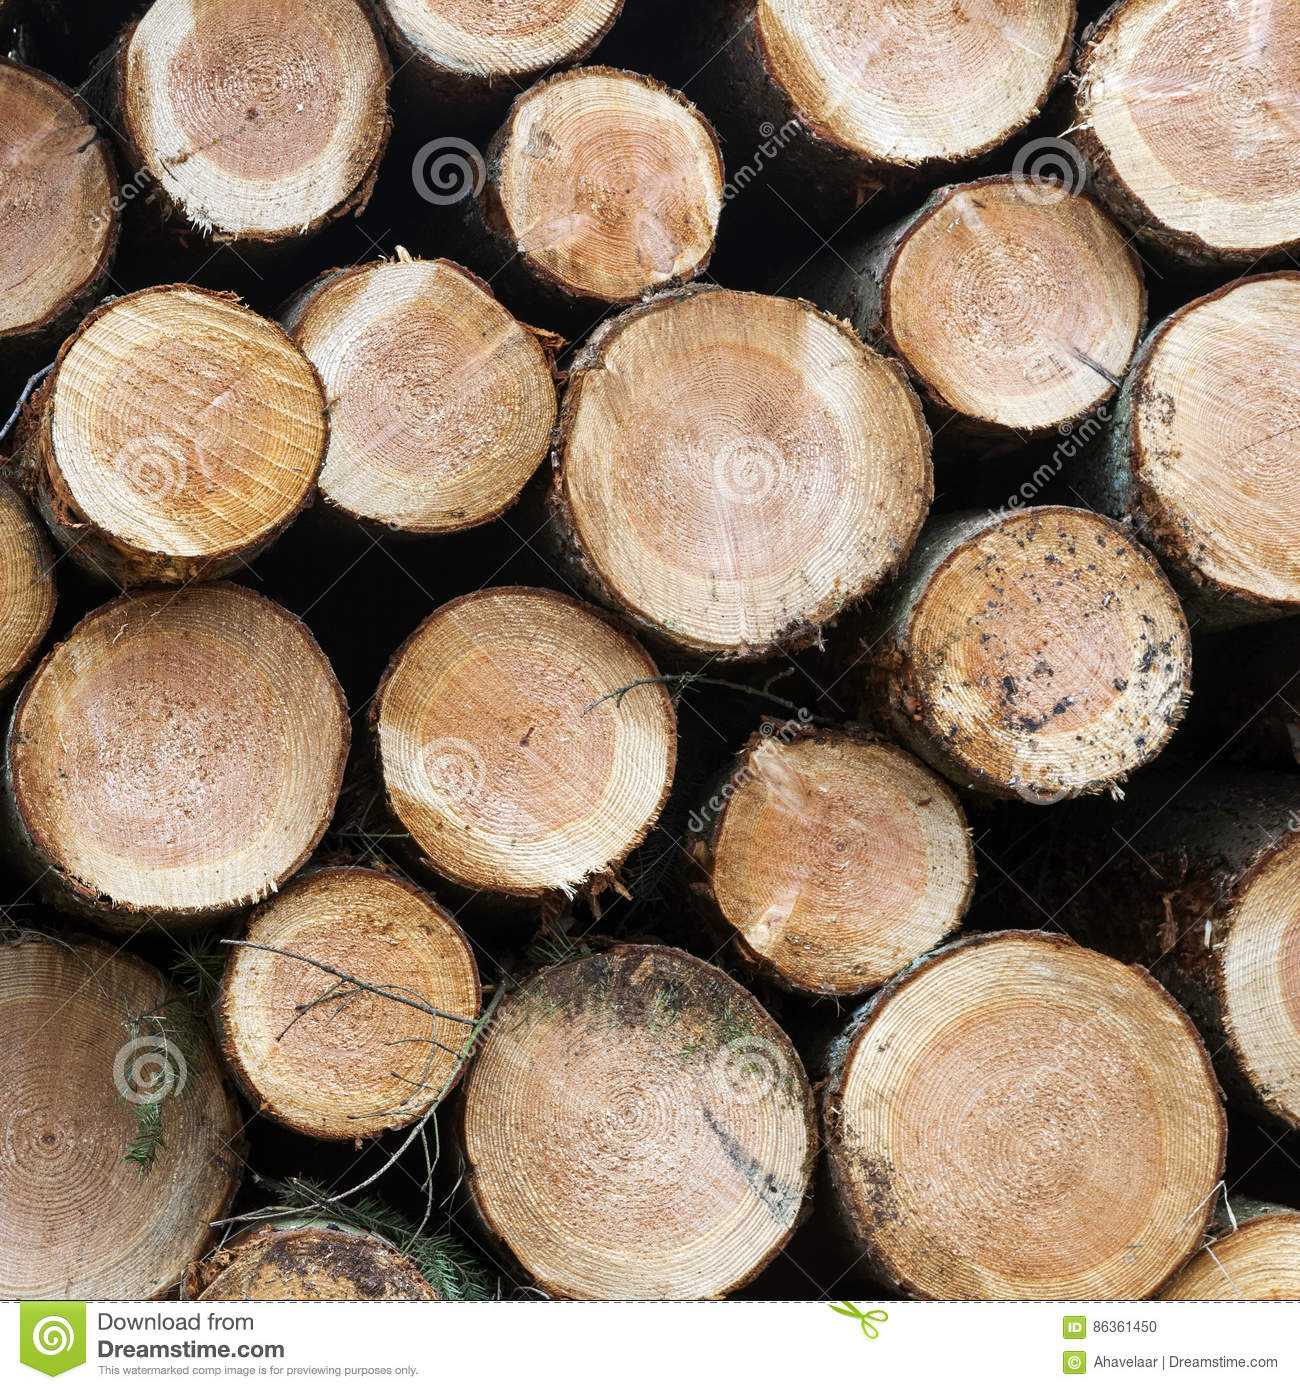 Pile of small cut trunks of spruce tree wood